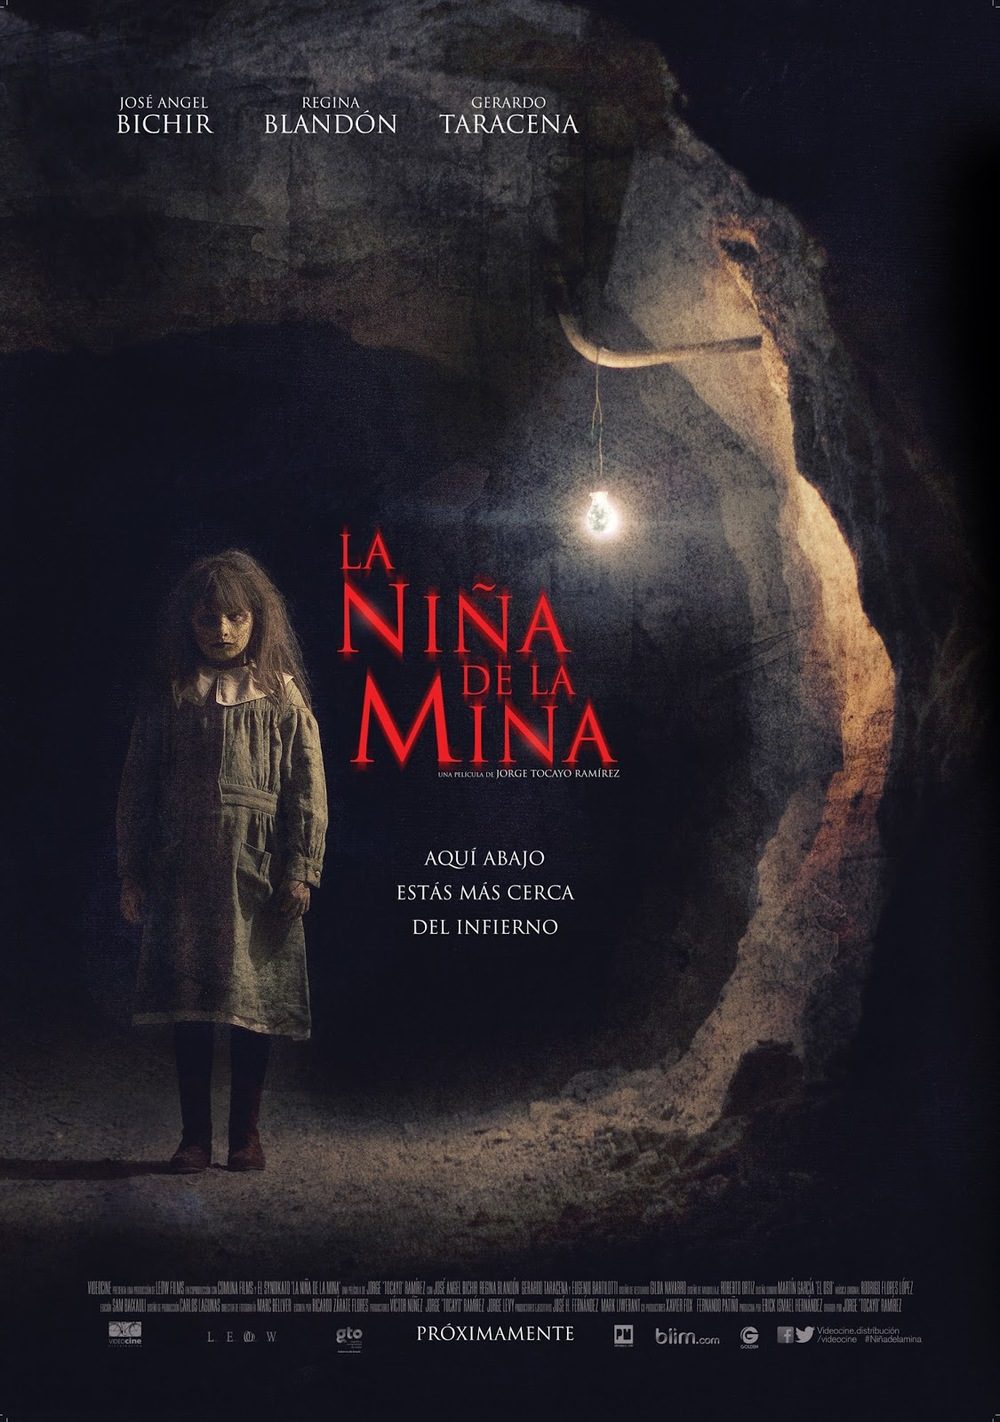 La Niña de la Mina (2016, Feature Film)